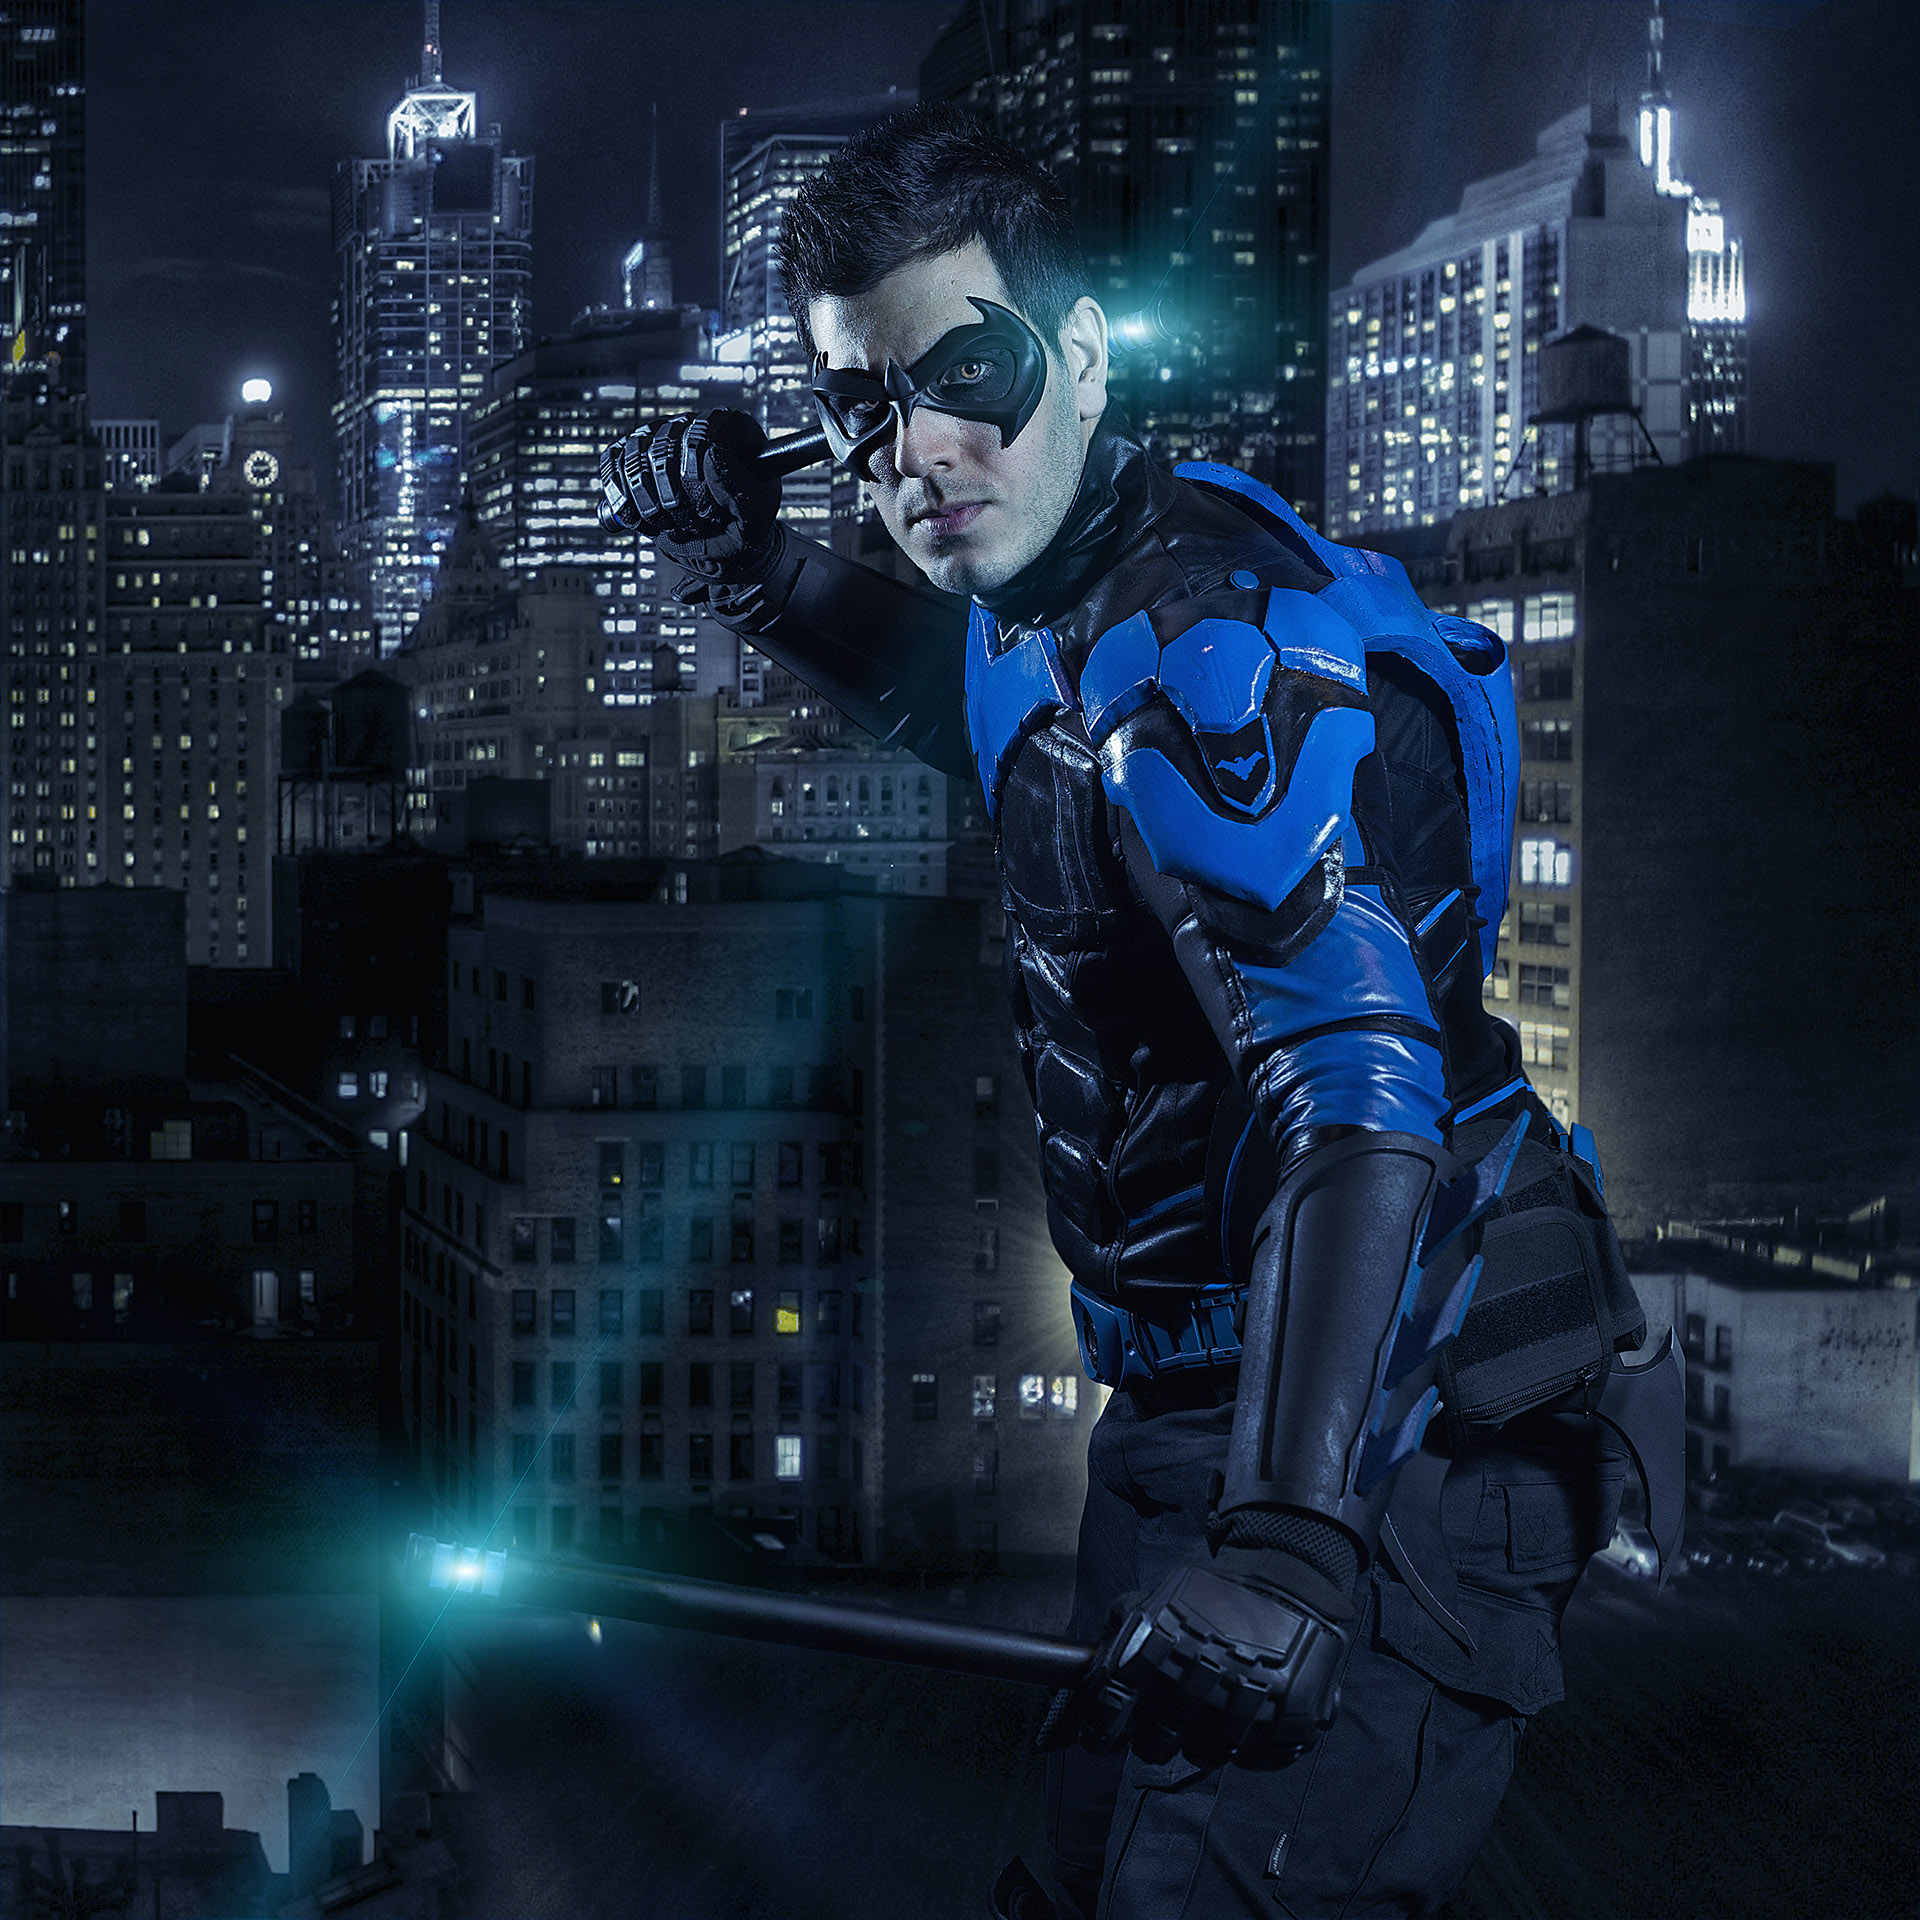 Nightwing @000hector000